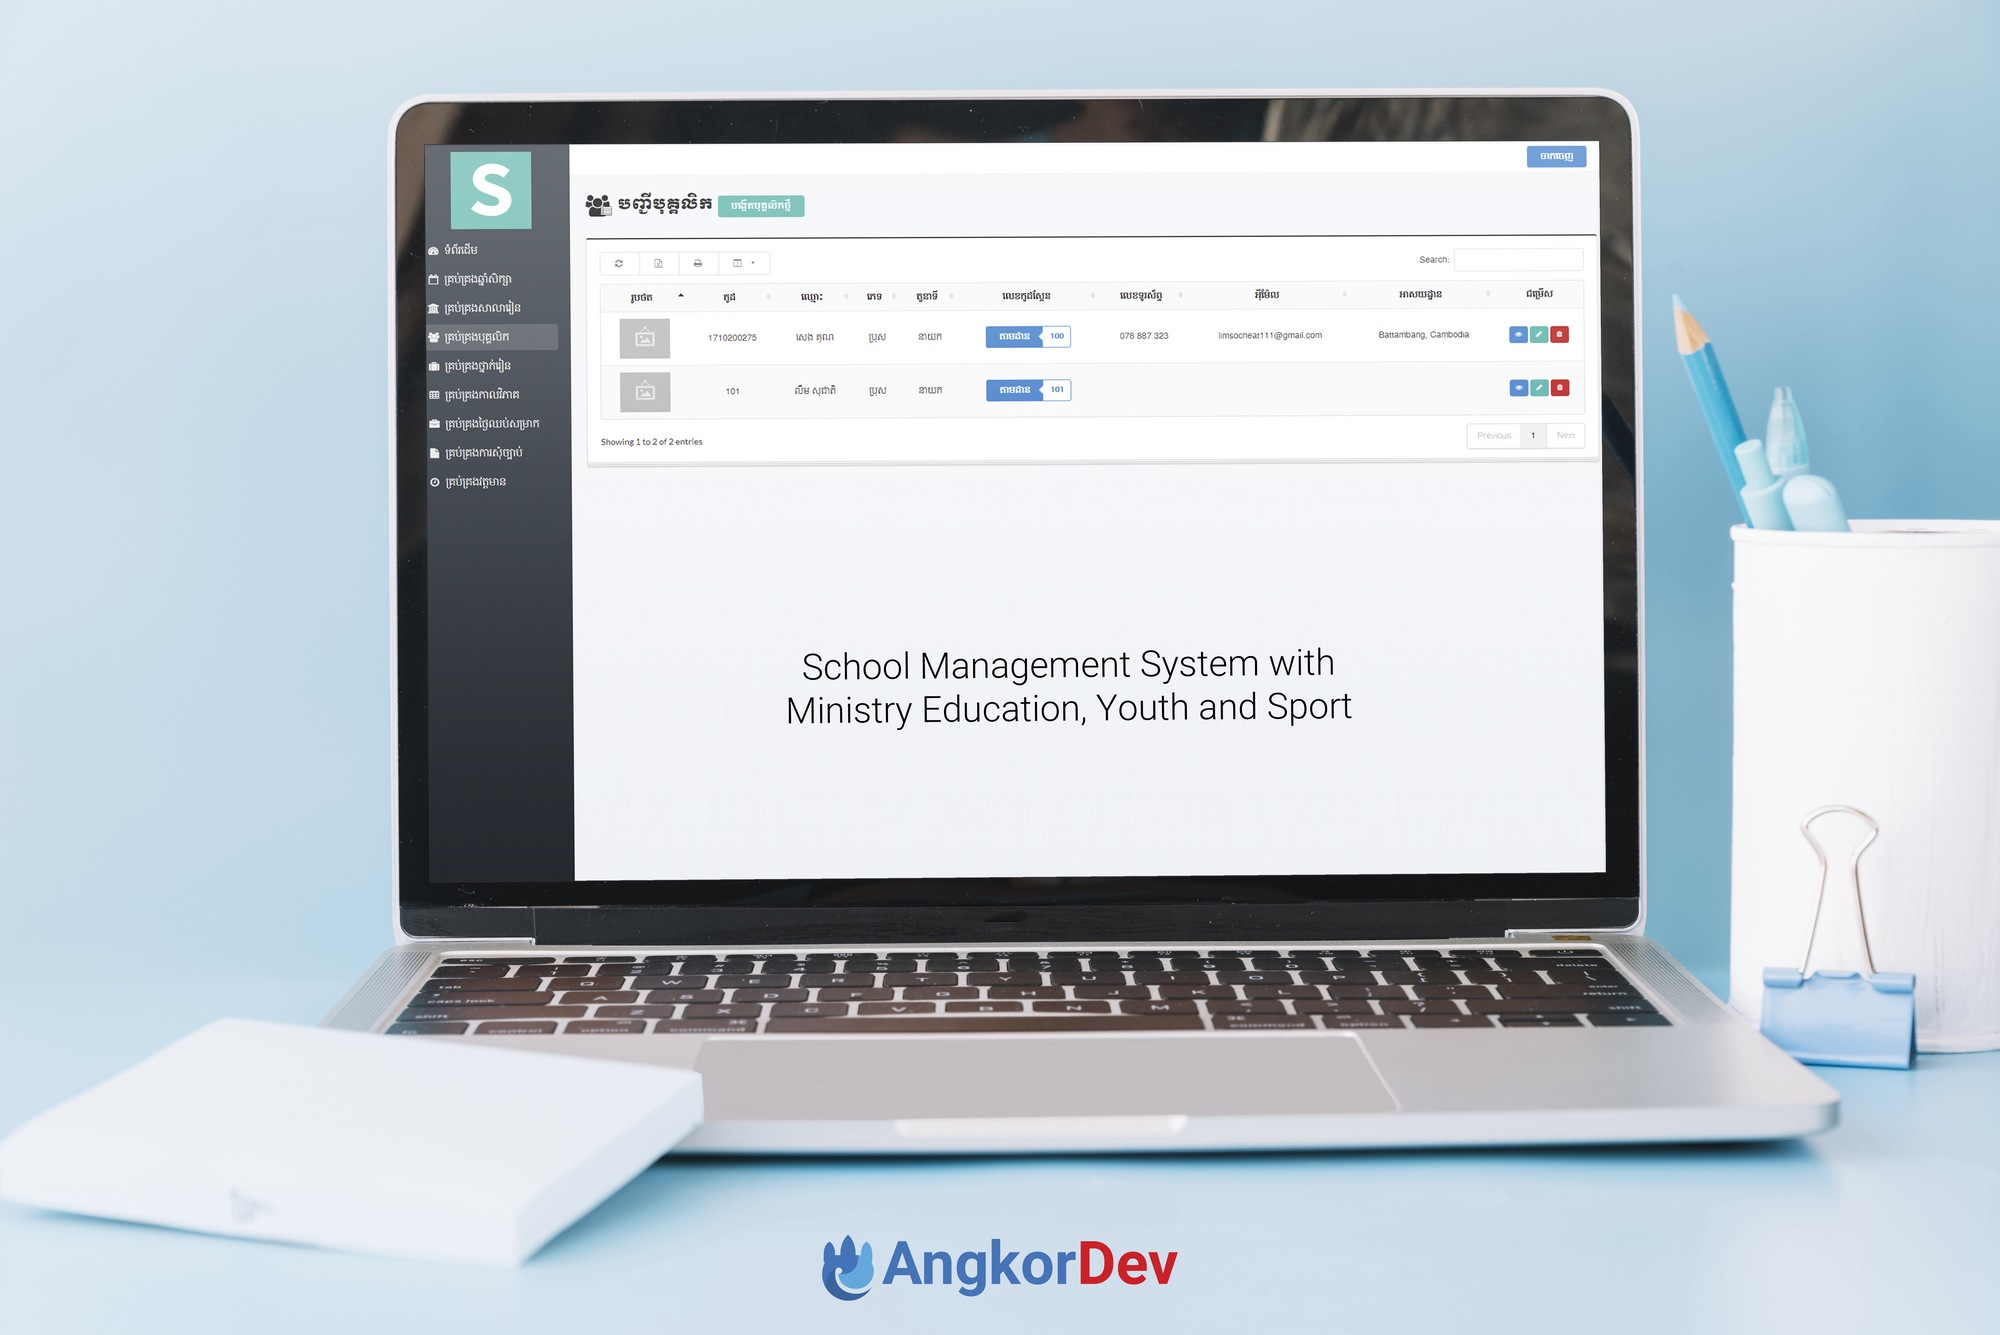 School Management System with Ministry Education, Youth and Sport